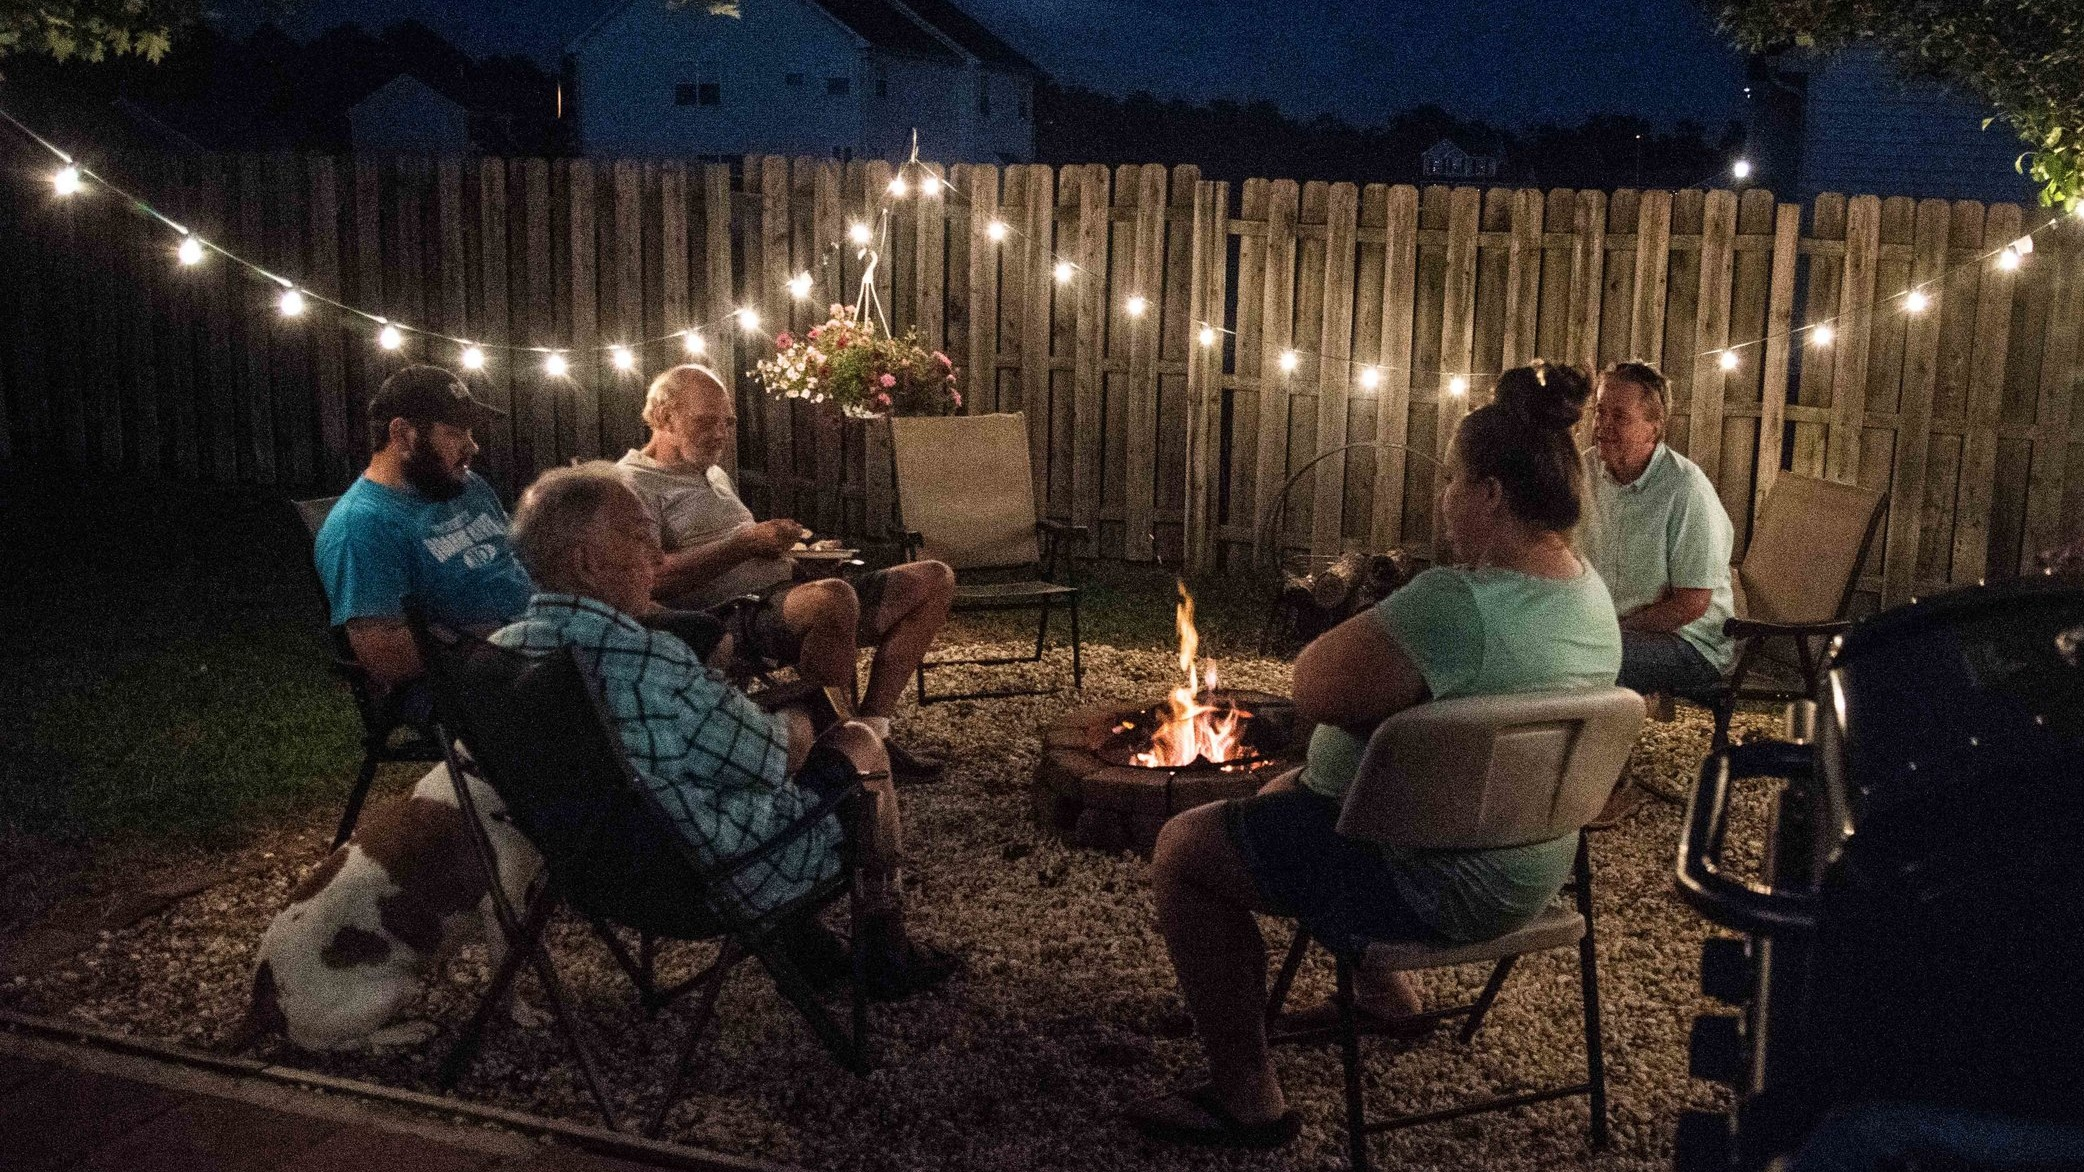 Life Groups - Find FreedomLife Groups are at the core of our discipleship process because we believe that growth happens best in the context of relationships.